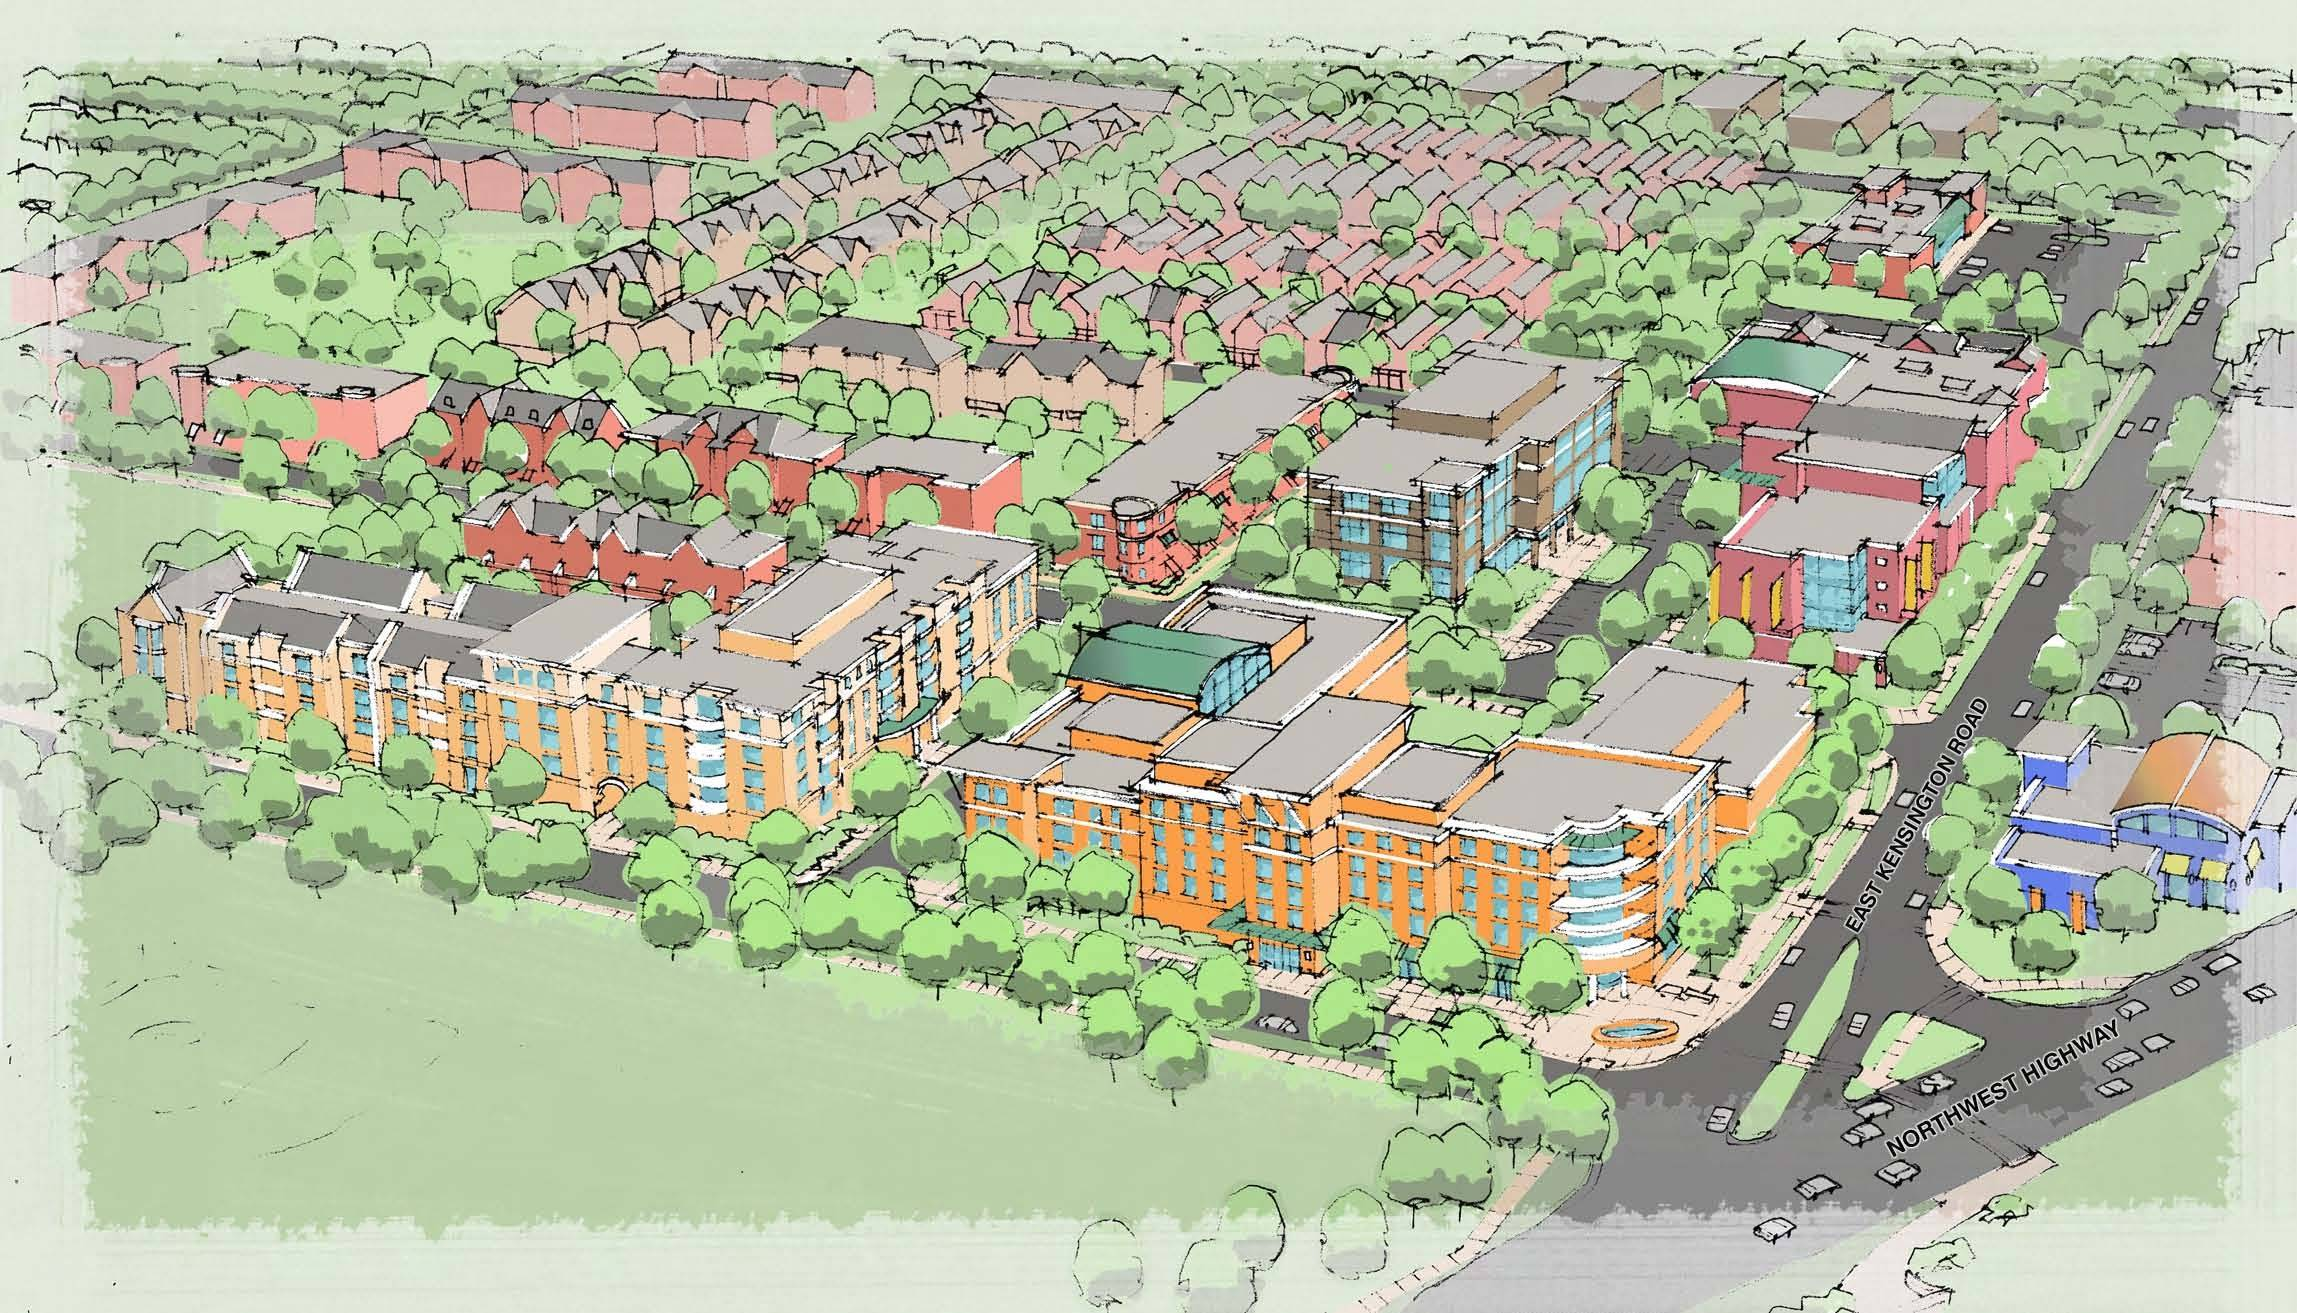 Proposed redevelopment plans for the Hickory-Kensington area in Arlington Heights include a mix of retail and commercial property. The village will host an public meeting Wednesday night on the project and a tax increment financing district intended to support it.